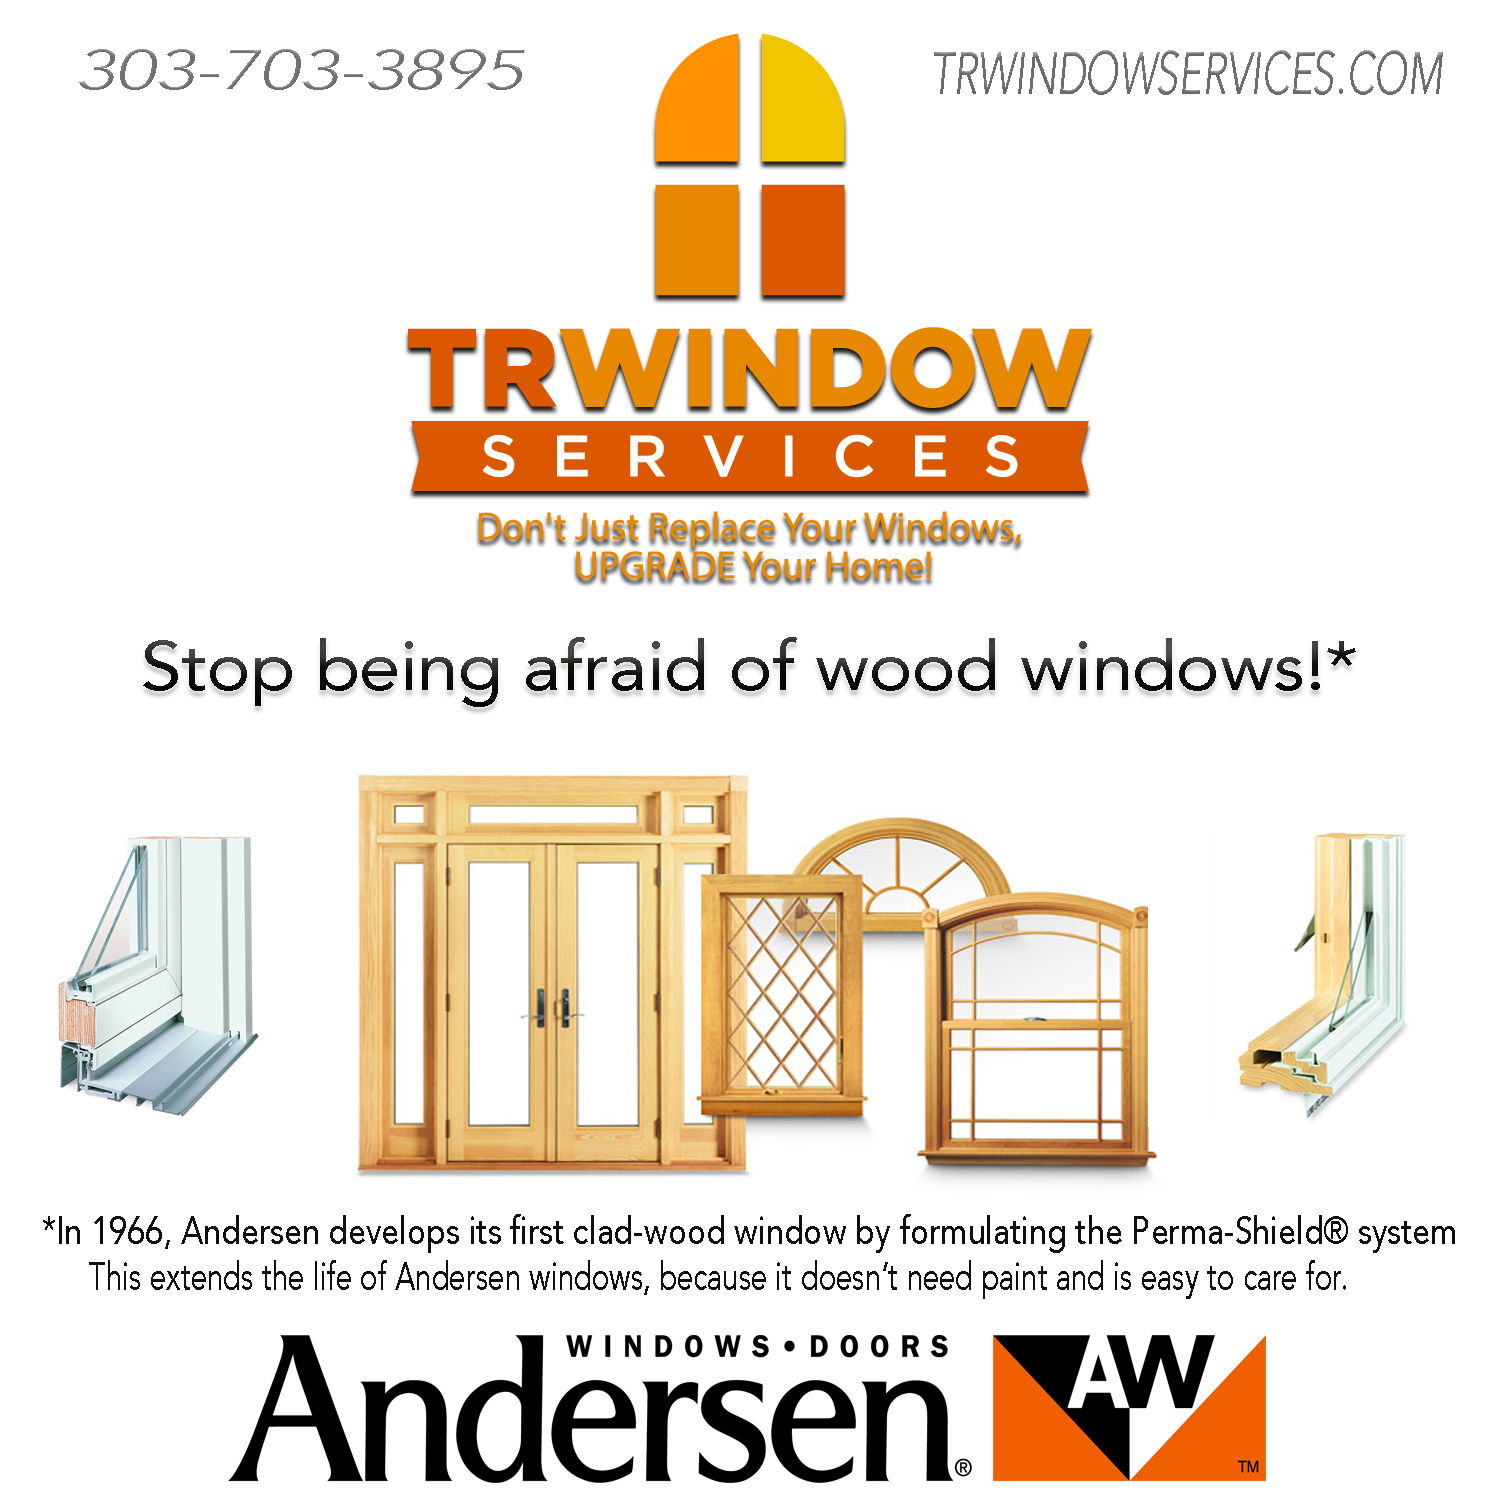 andersen windows, denver andersen windows, replacement windows denver blog, denver replacement windows colorado